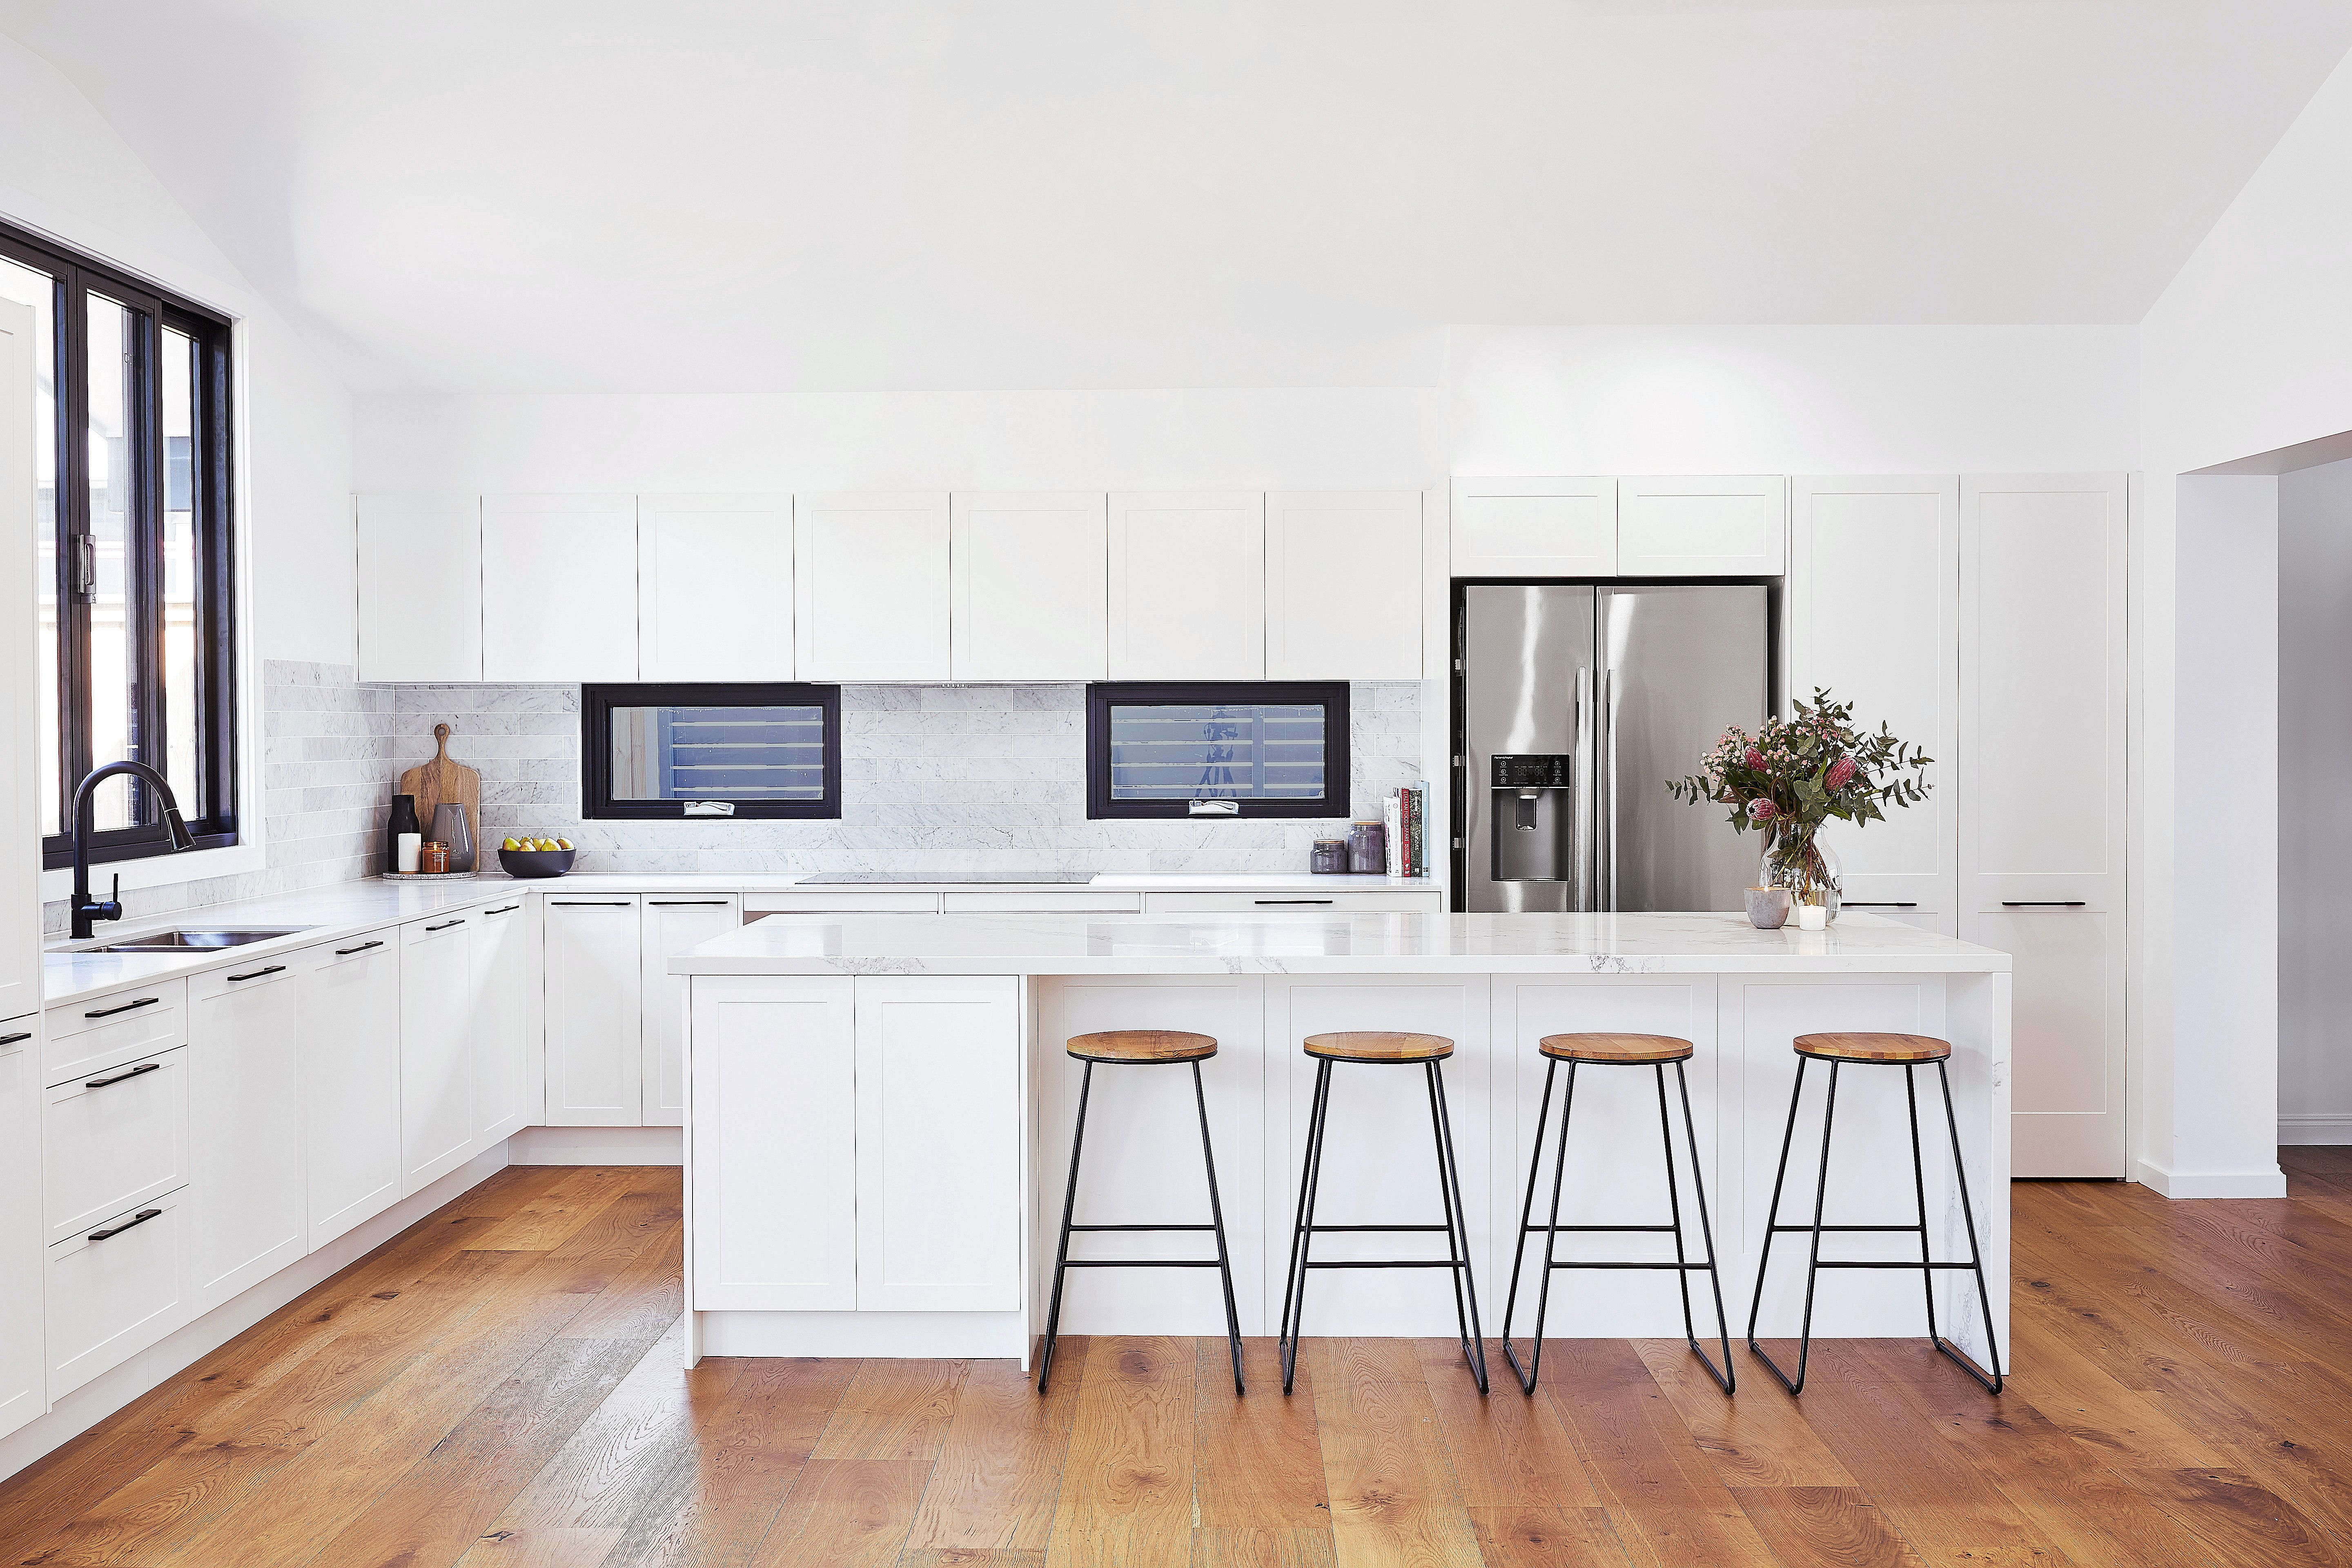 New Light Kitchen Floors With White Cabinets Light Kitchen Floor Top Kitchen Cabinets Kitchen Flooring